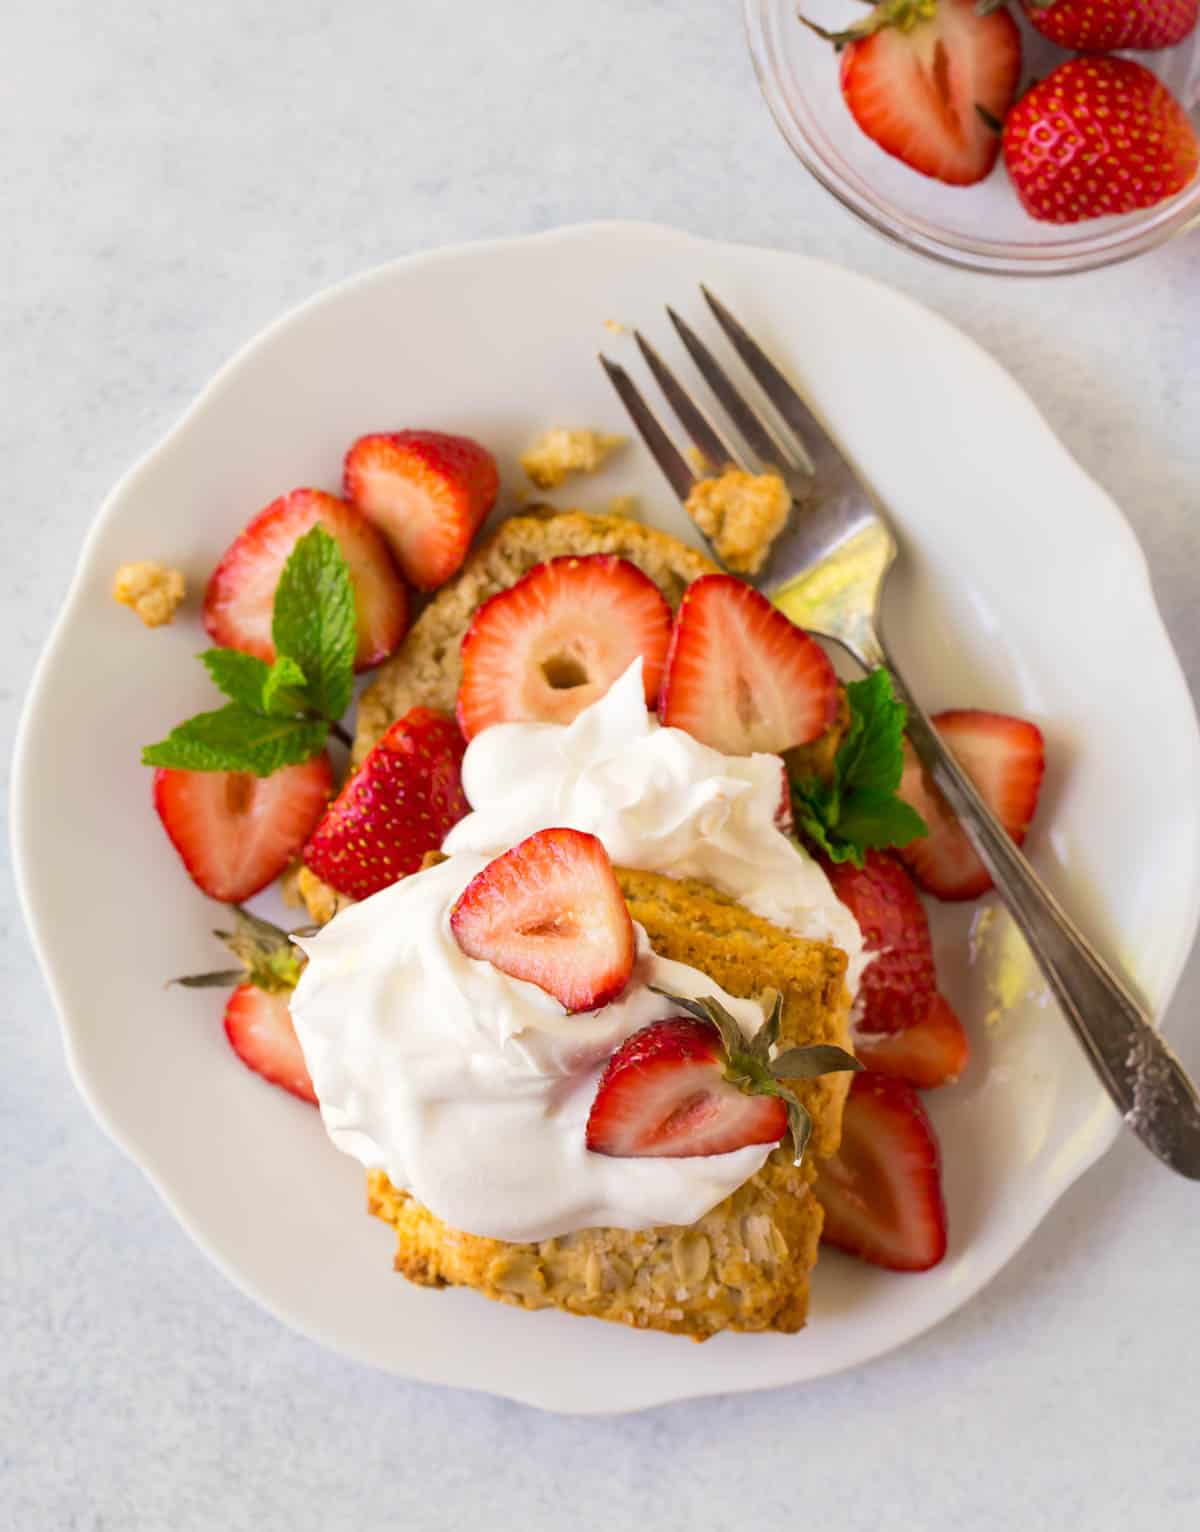 Gluten free strawberry shortcakes topped with whipped cream on a plate with a fork and a side of fresh strawberries